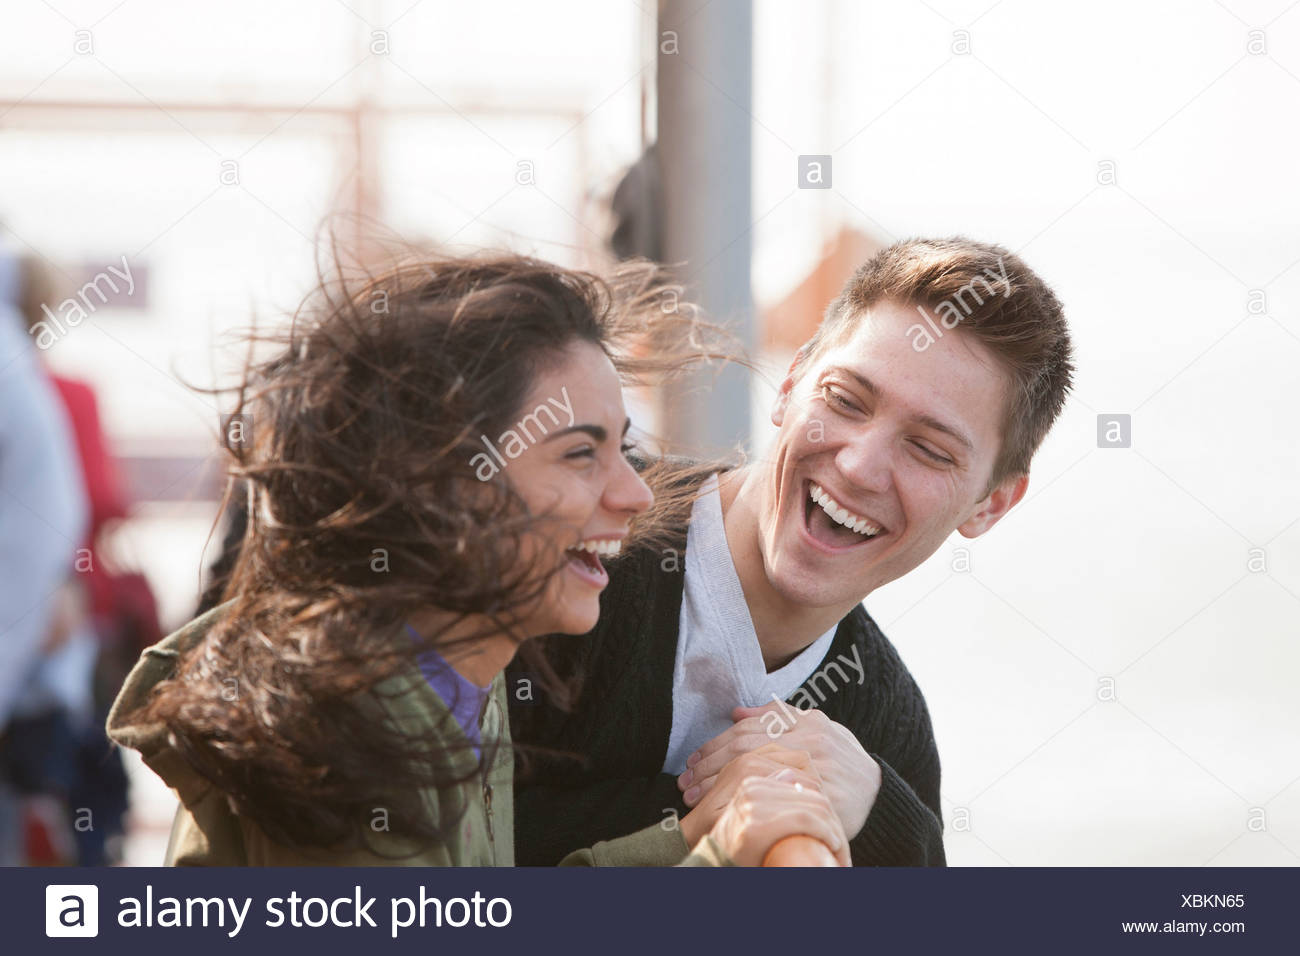 Young couple on ferry, laughing - Stock Image